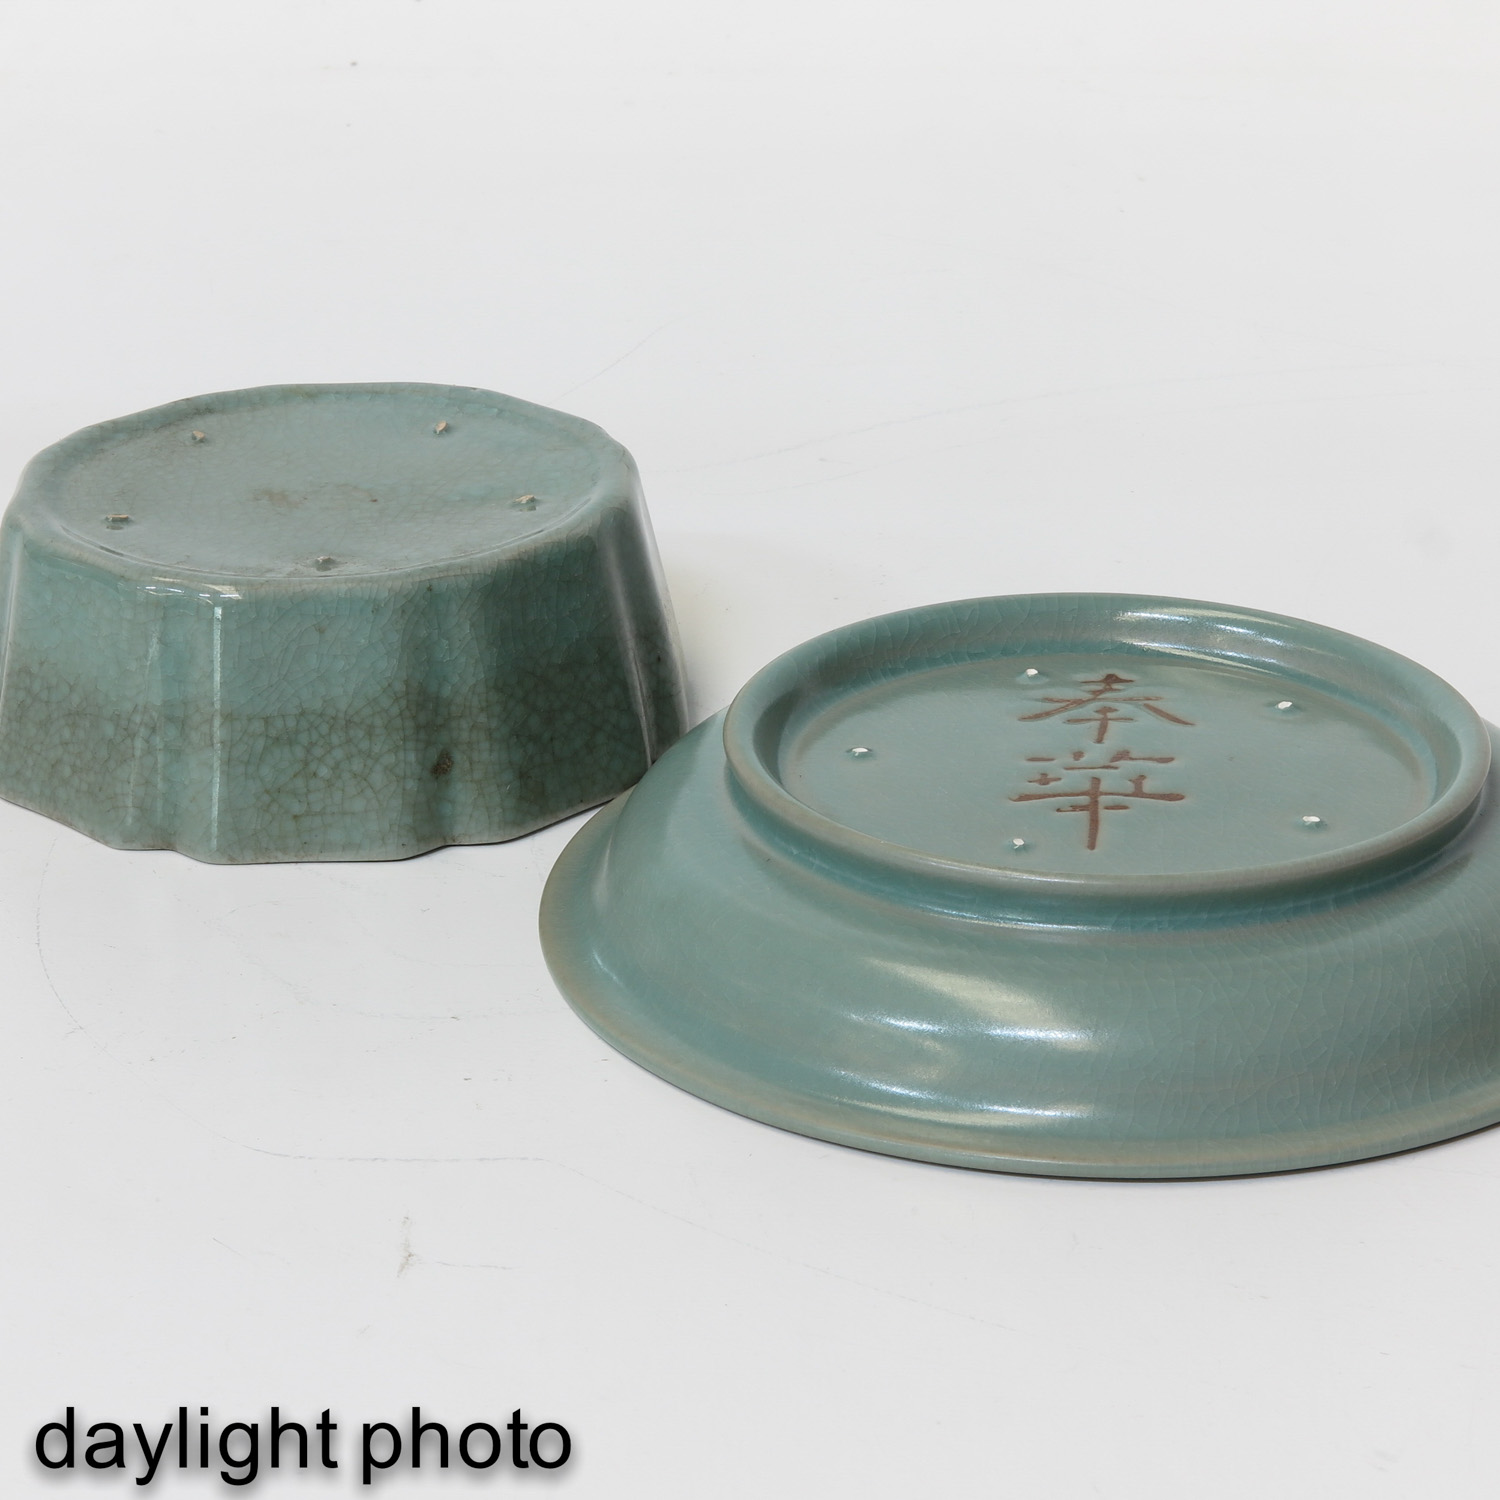 A Celadon Plate and Dish - Image 8 of 10